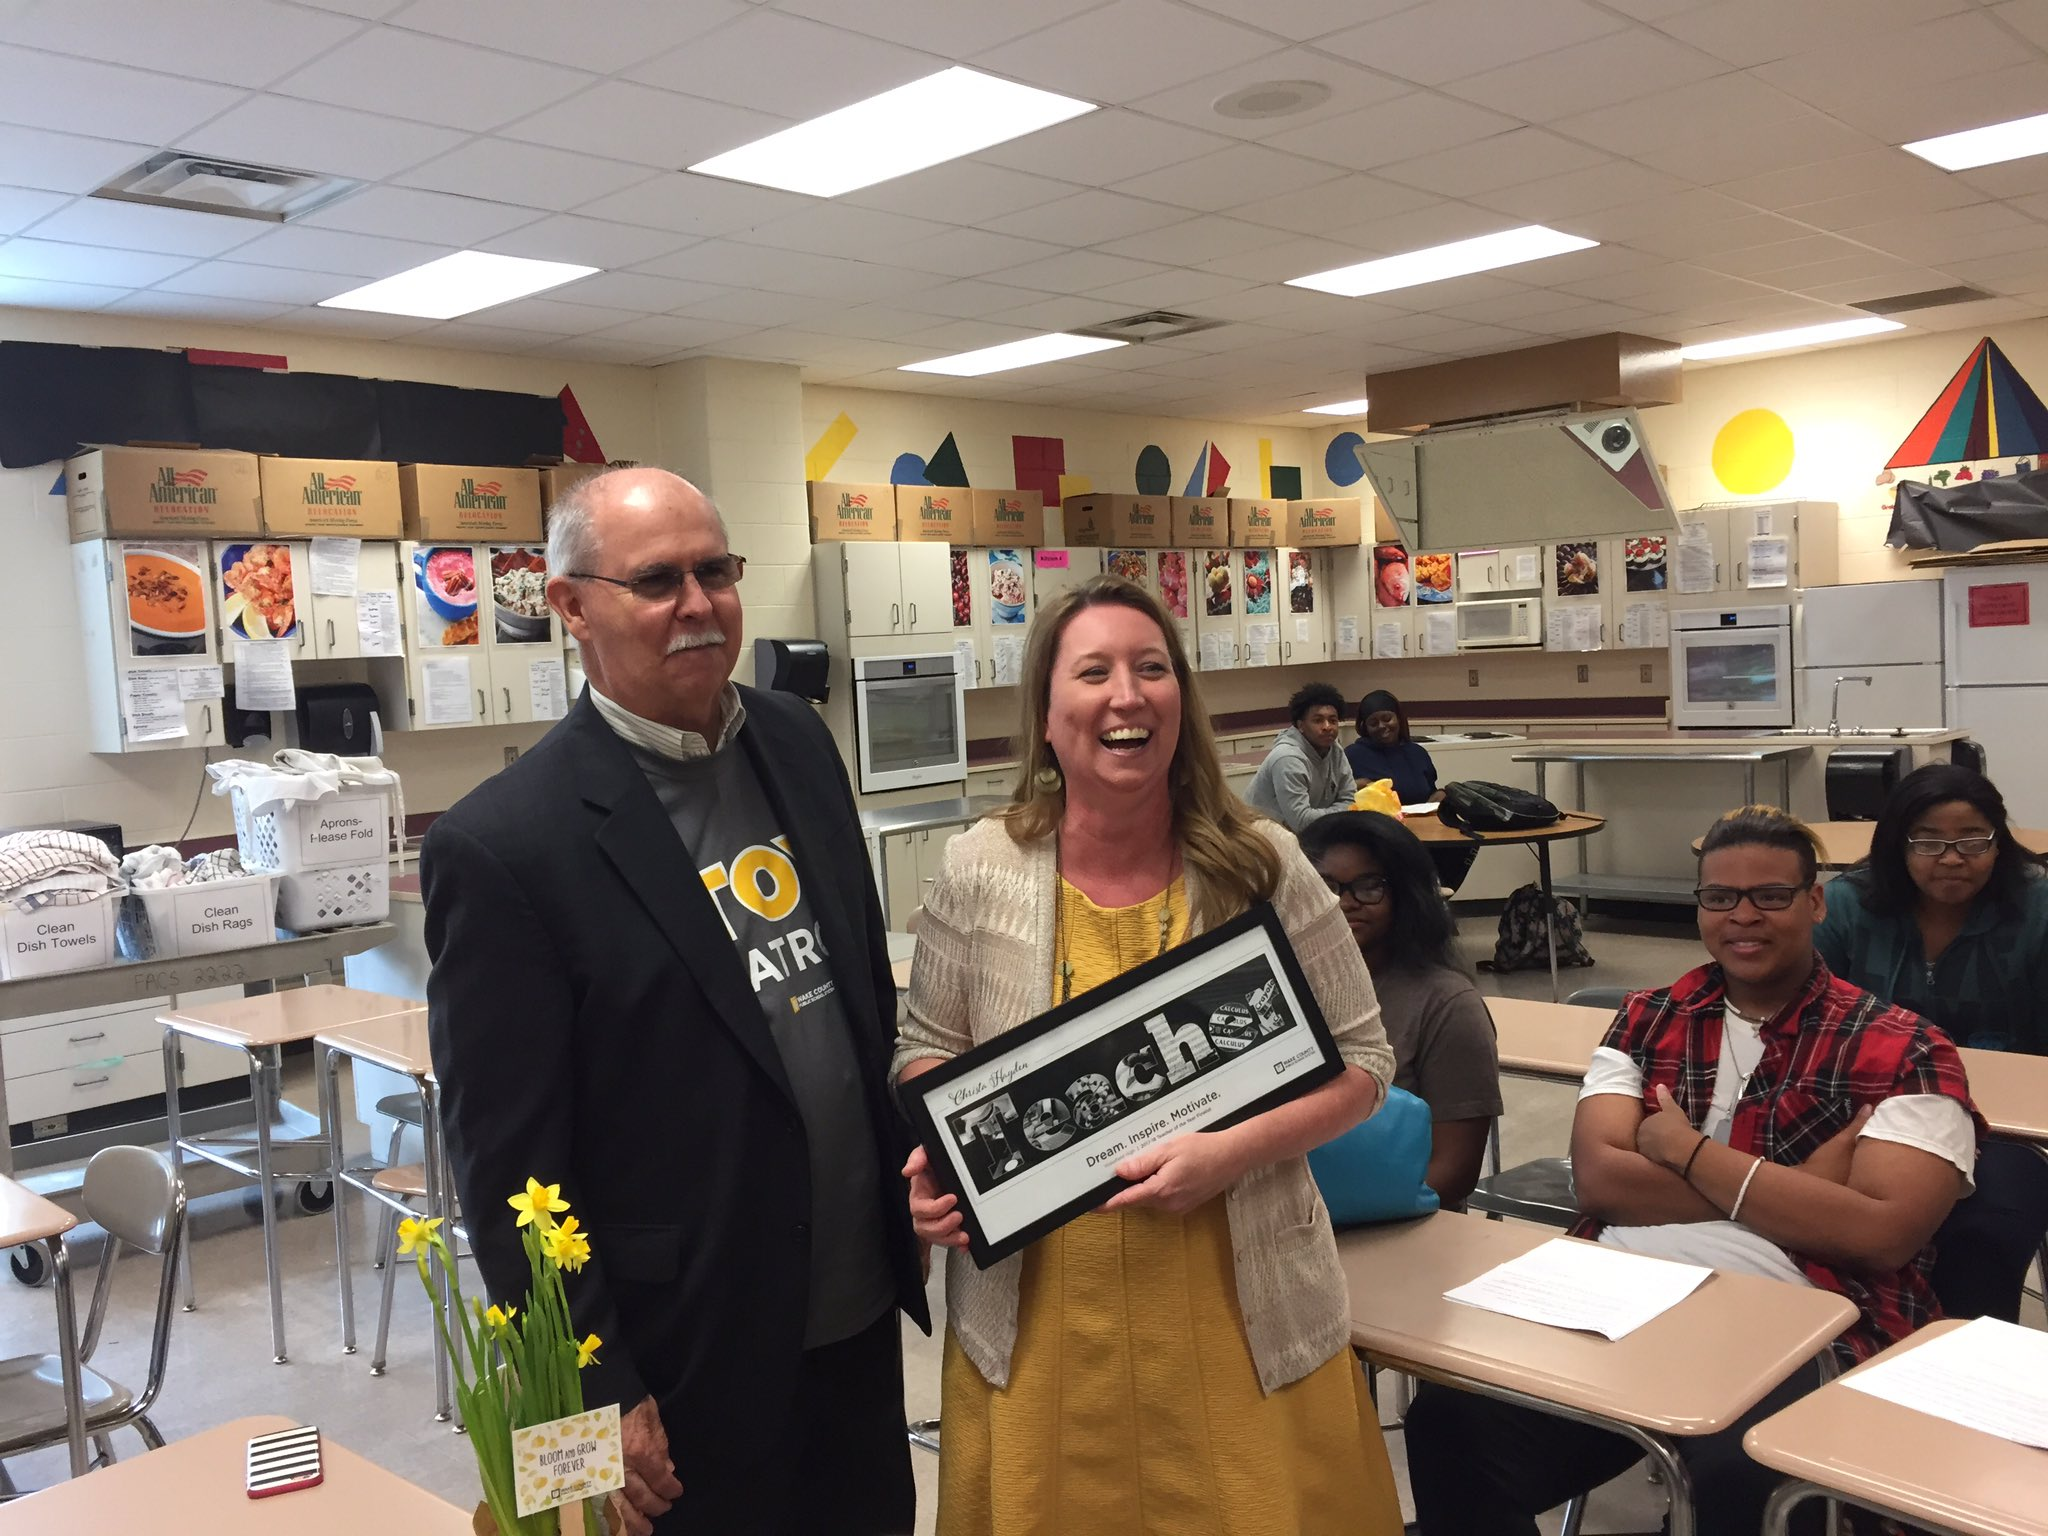 Yay for Christa Hayden from @WakefieldHS! She is a Family & Consumer Science teacher and our 6th @WCPSS Teacher of the Year finalist! https://t.co/BTu7u5LcHQ